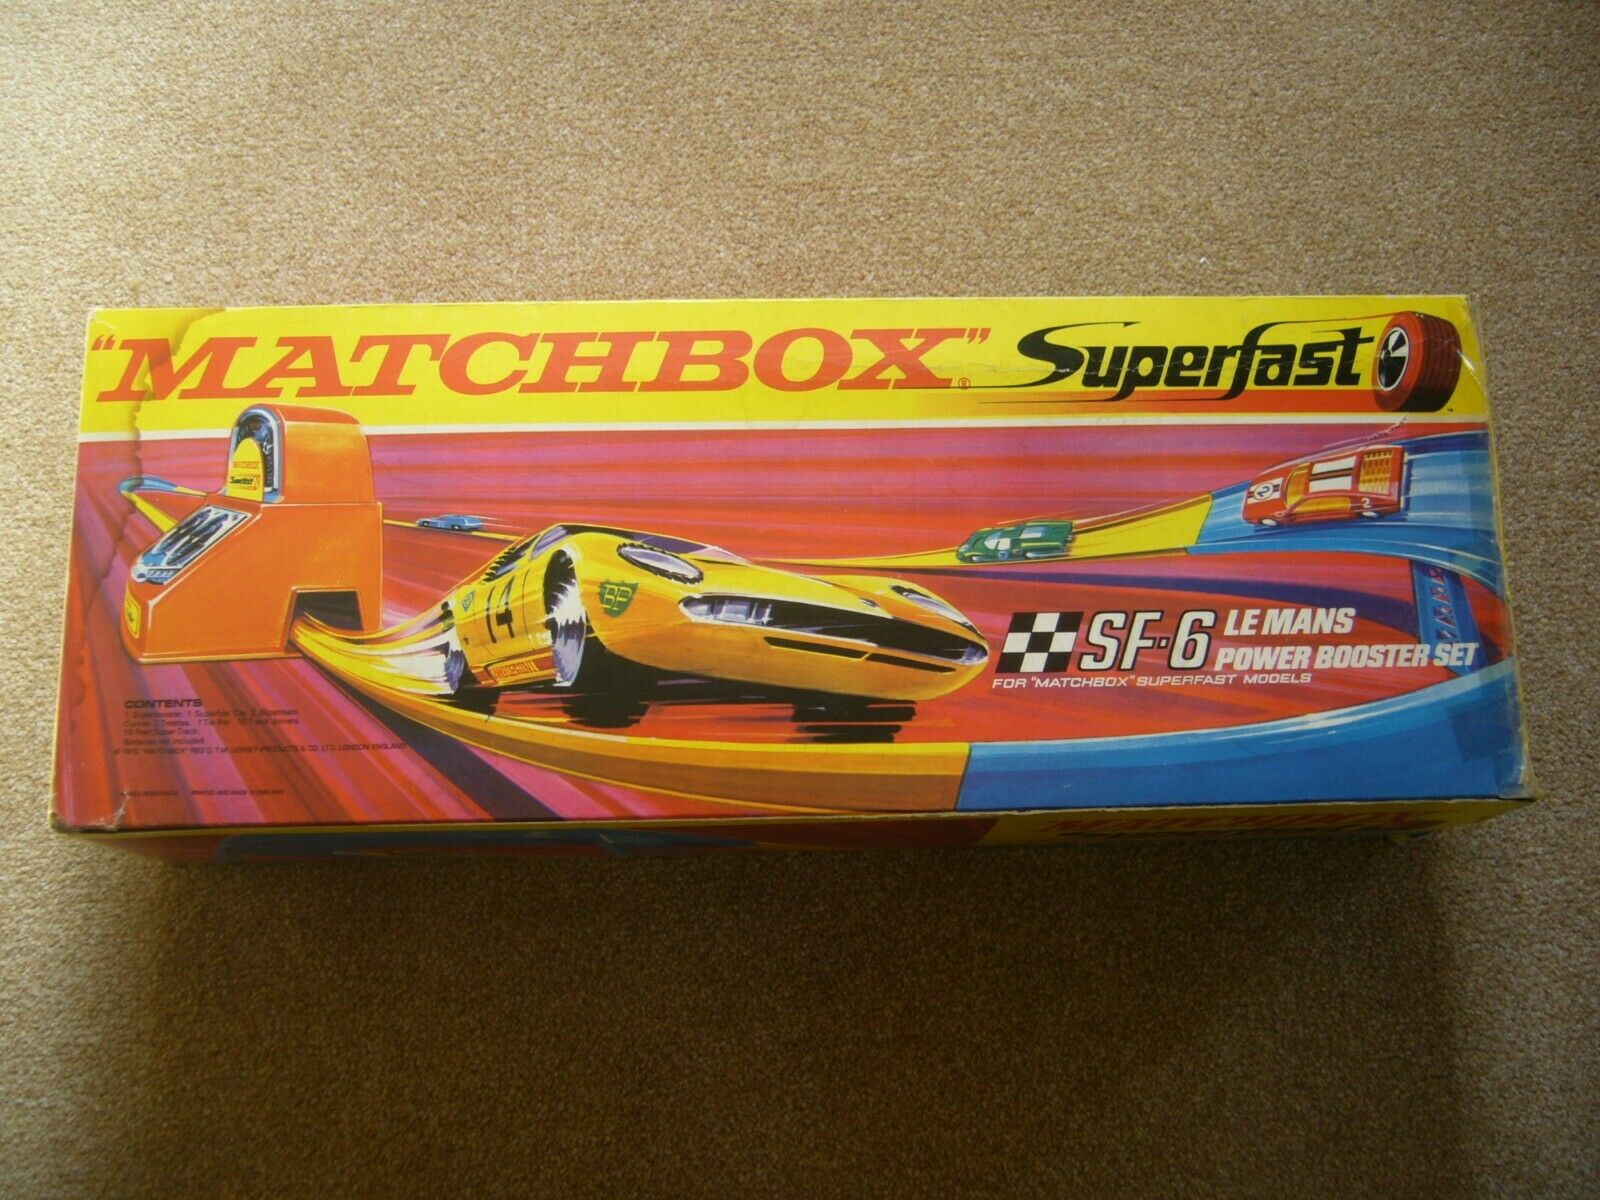 MATCHBOX SF-6 Le Mans Power Booster Set